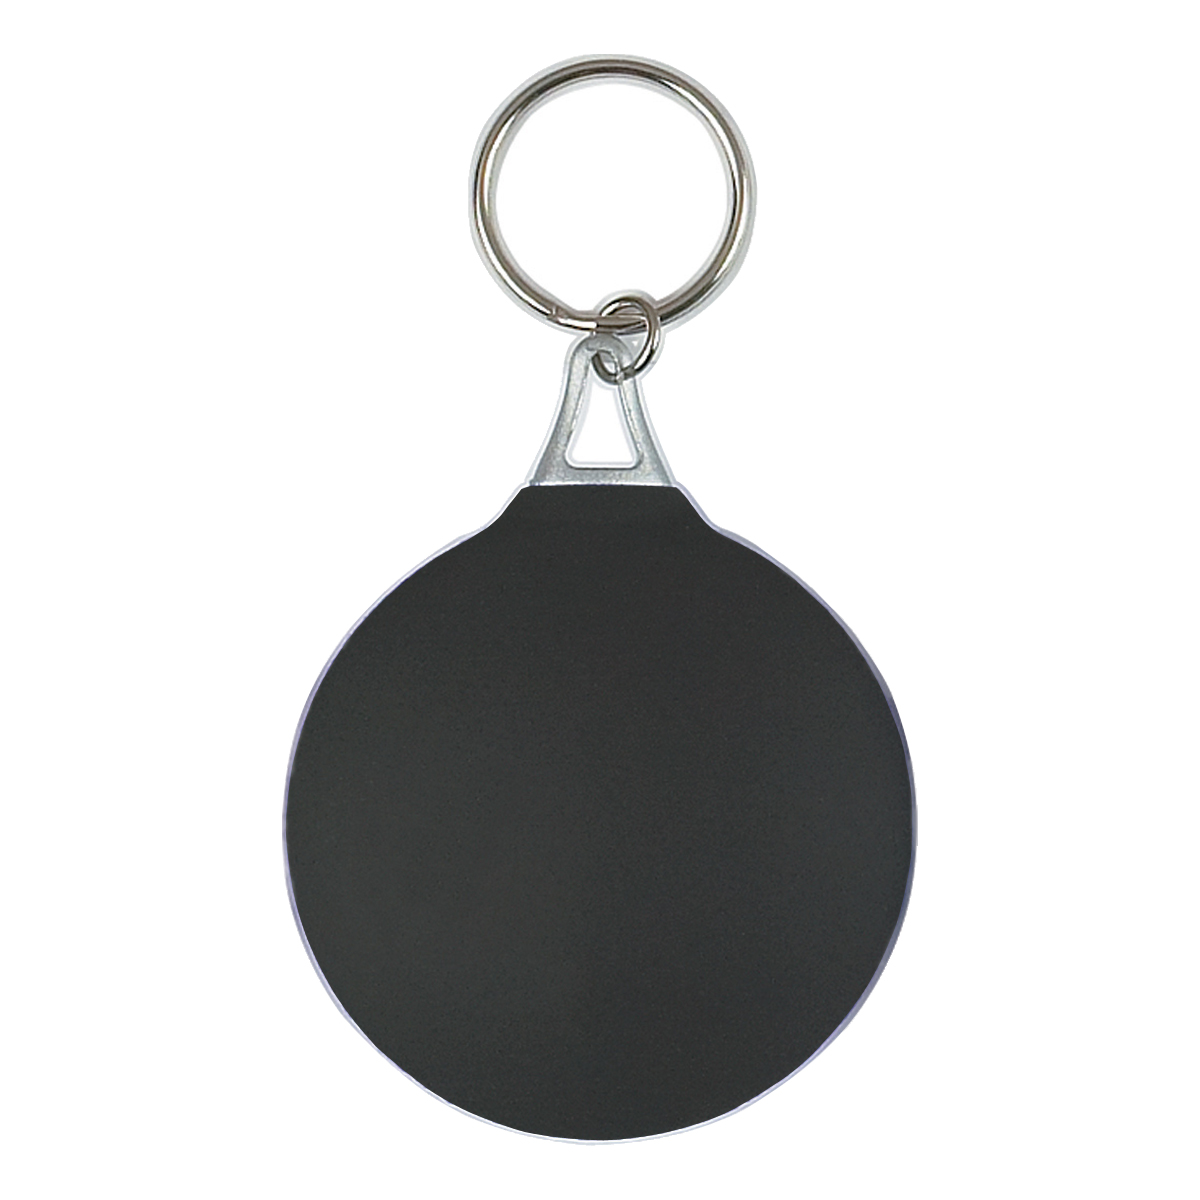 Black Rubber Key Chain With Microfiber Cleaning Cloth